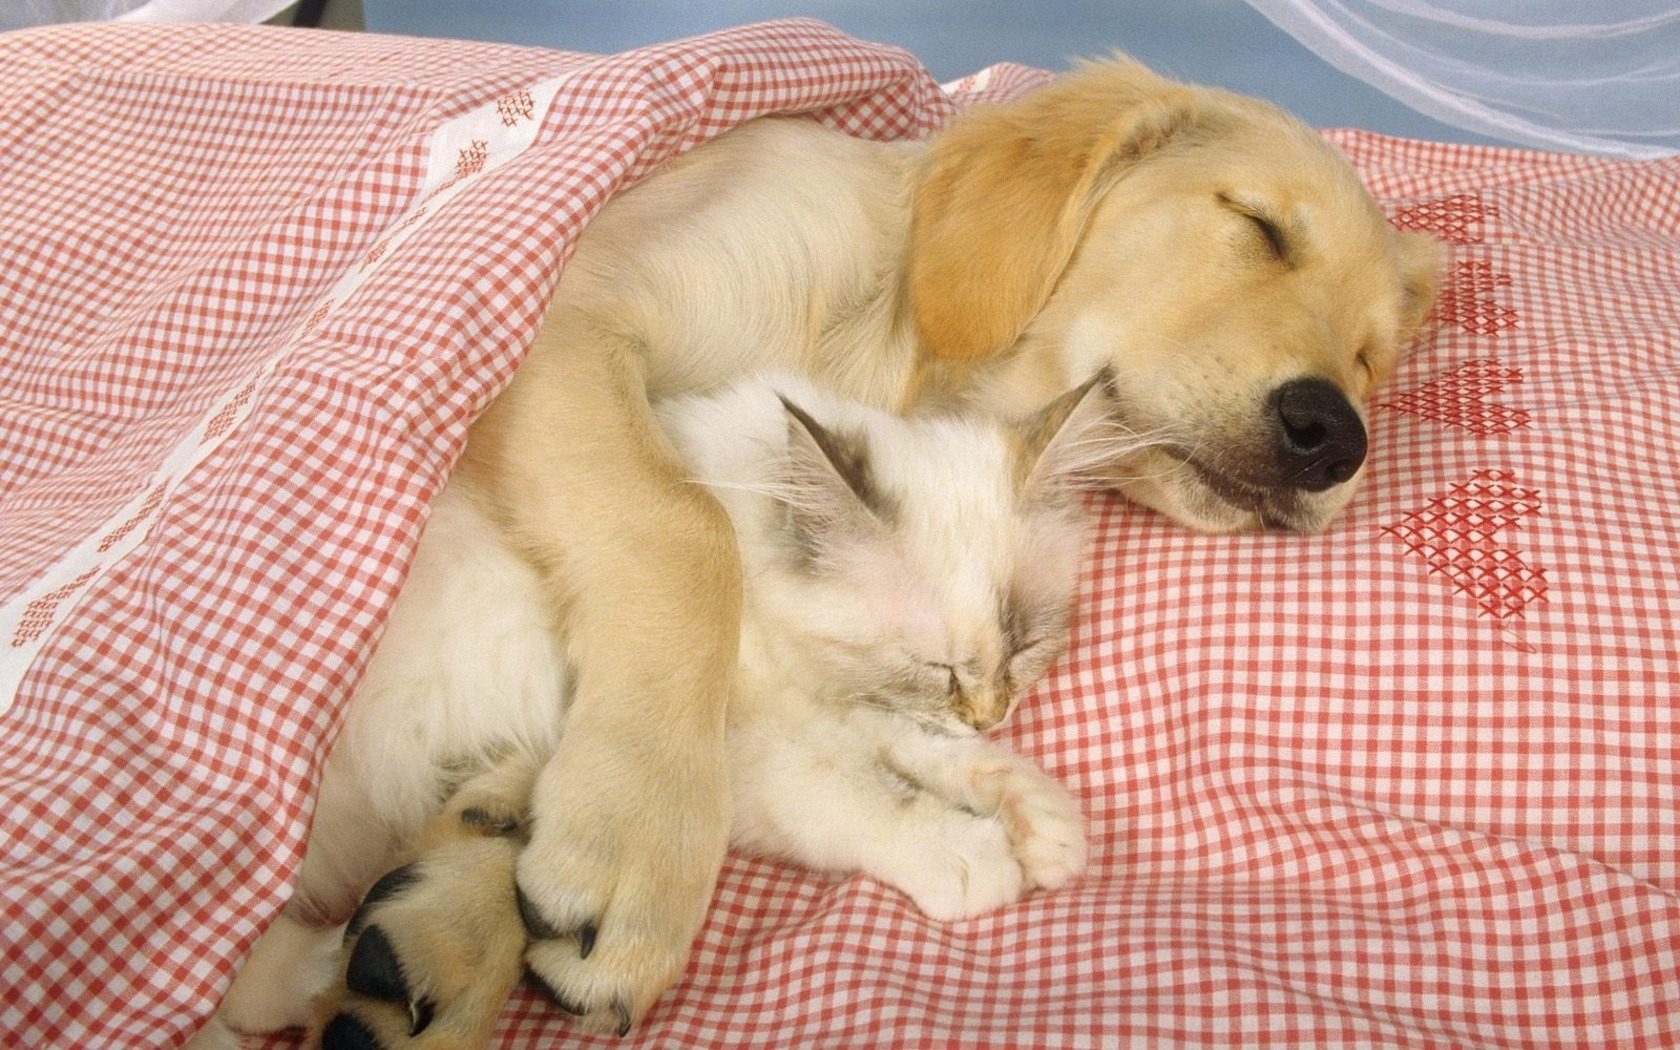 Animals_Beasts_Sleeping_friends_023711_